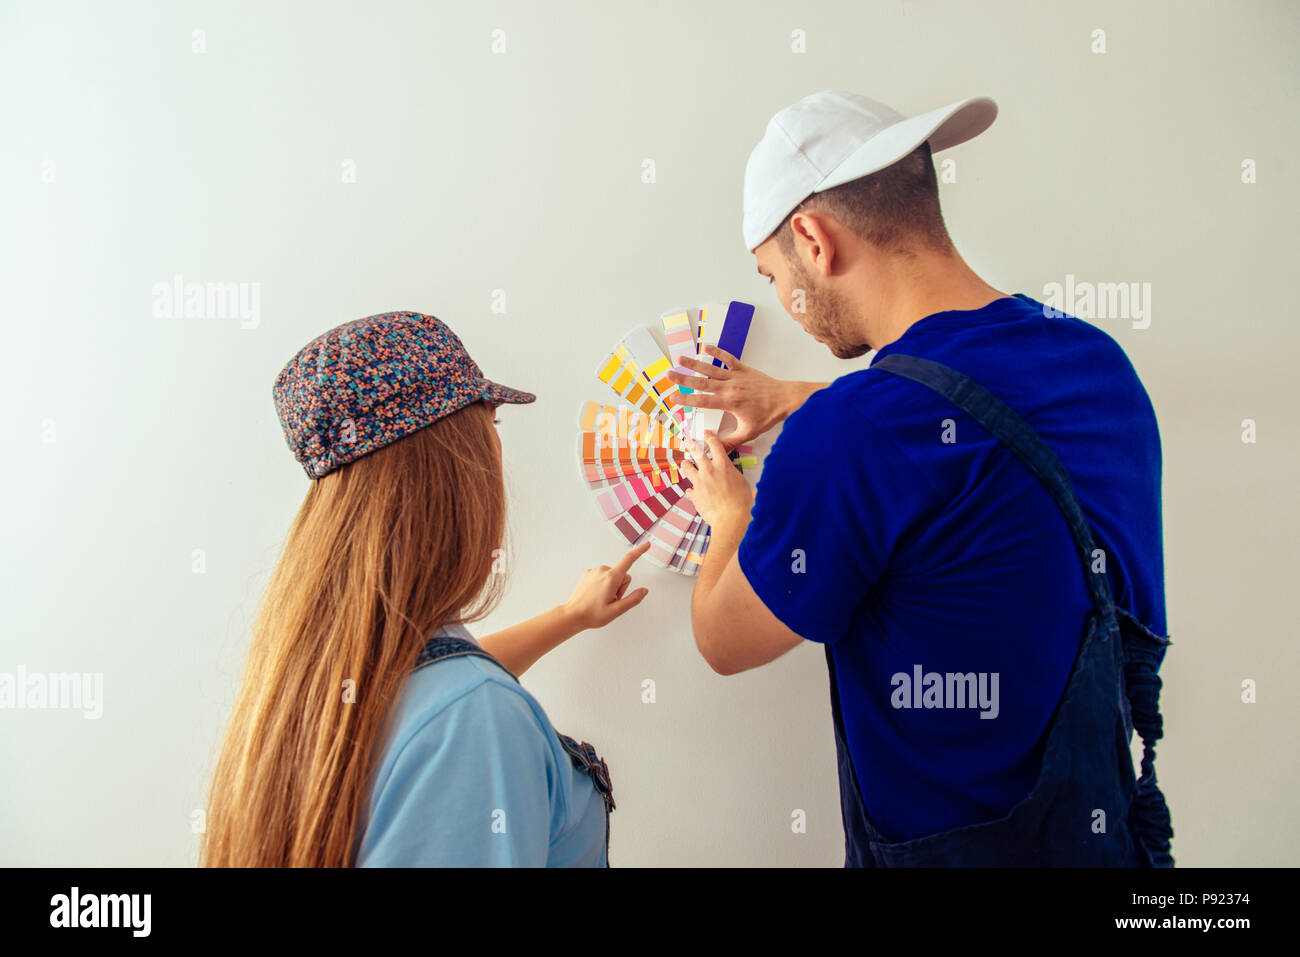 Overall Back Stock Photos & Overall Back Stock Images - Page 5 - Alamy